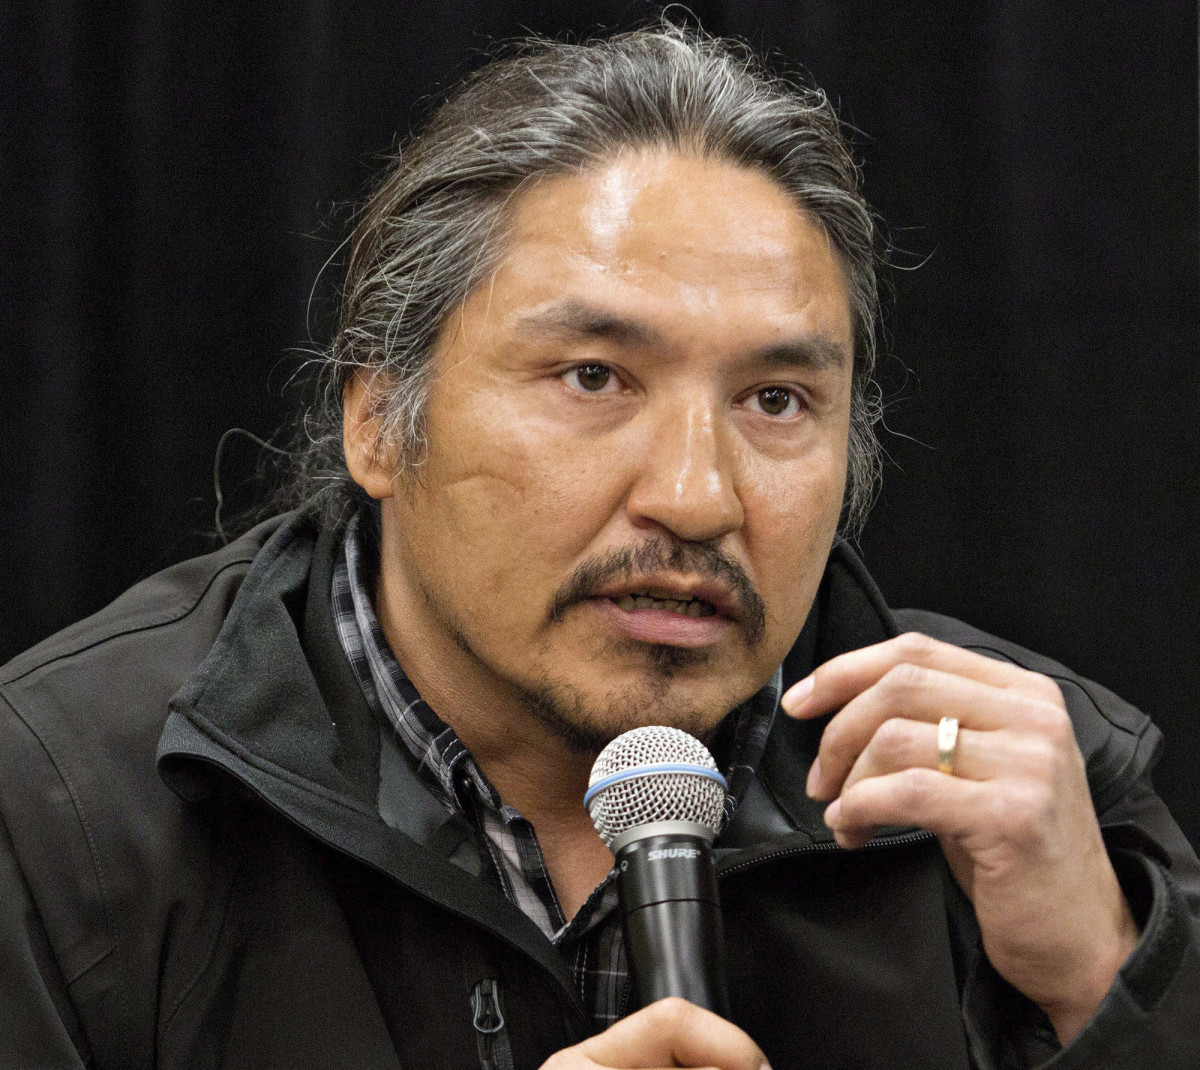 In this May 30, 2014 file photo, Chief Allan Adam of the Athabasca Chipewyan First Nation speaks during a news conference in Fort McMurray, Alberta, Canada. Canadian Prime Minister Justin Trudeau says police dashcam video of the violent arrest of Adam is shocking and not an isolated incident. The arrest has received attention in Canada as a backlash against racism grows in the wake of the death of George Floyd, a black man who died after a white Minneapolis police officer pressed a knee to his neck. (Jason Franson/The Canadian Press via AP)